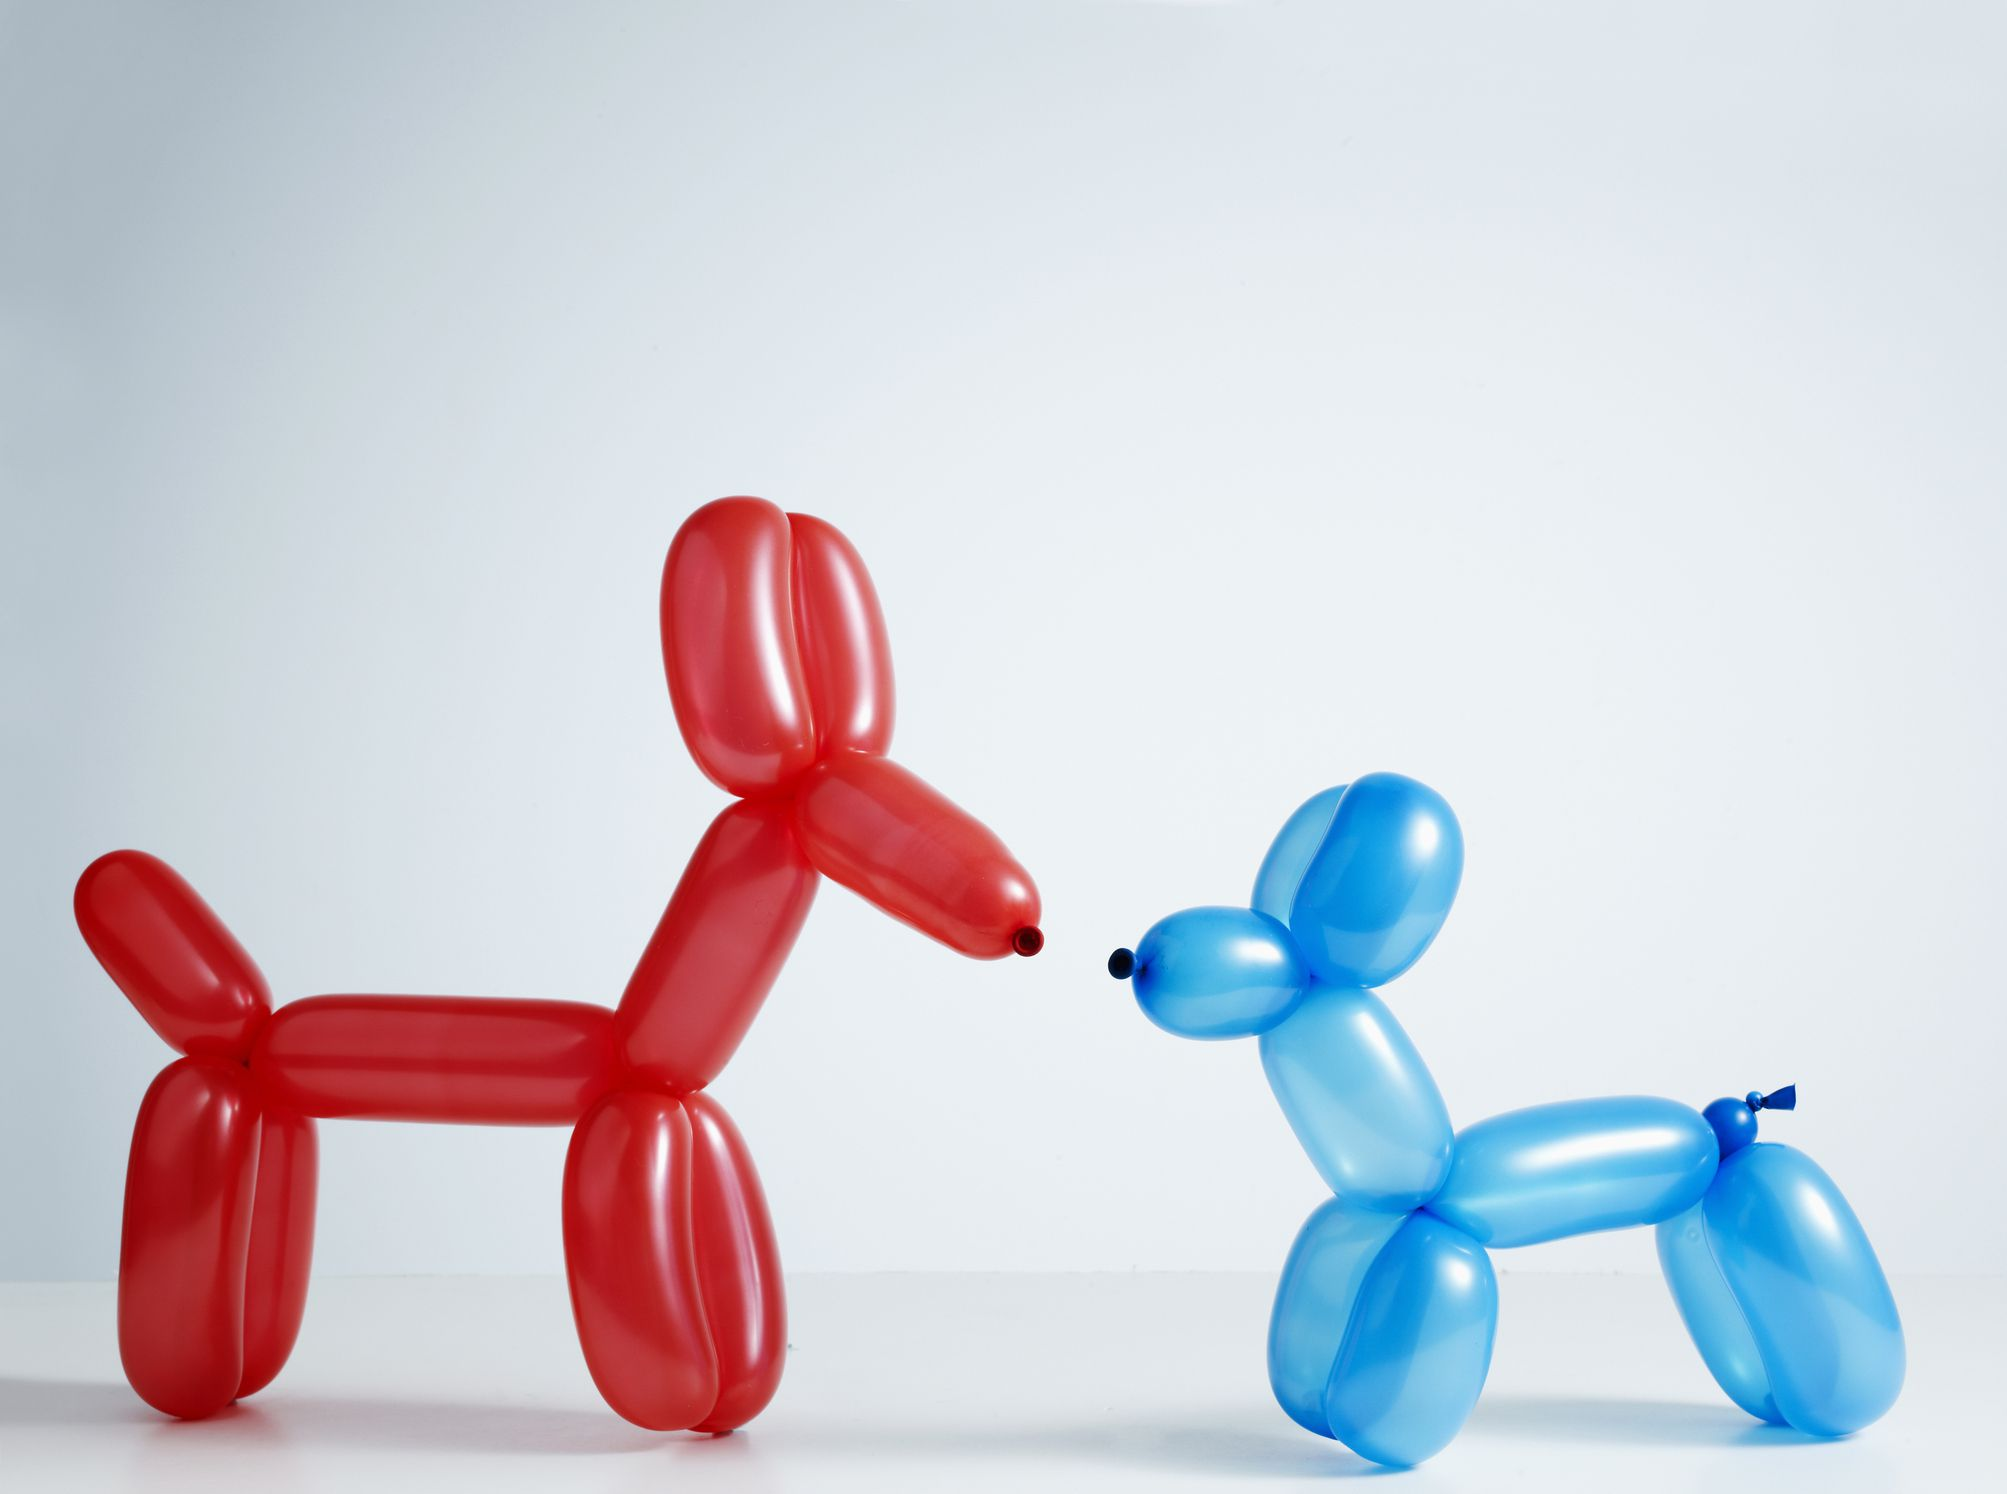 Balloon-dogs-GettyImages-90339990-58d01f225f9b581d72ca4ec3